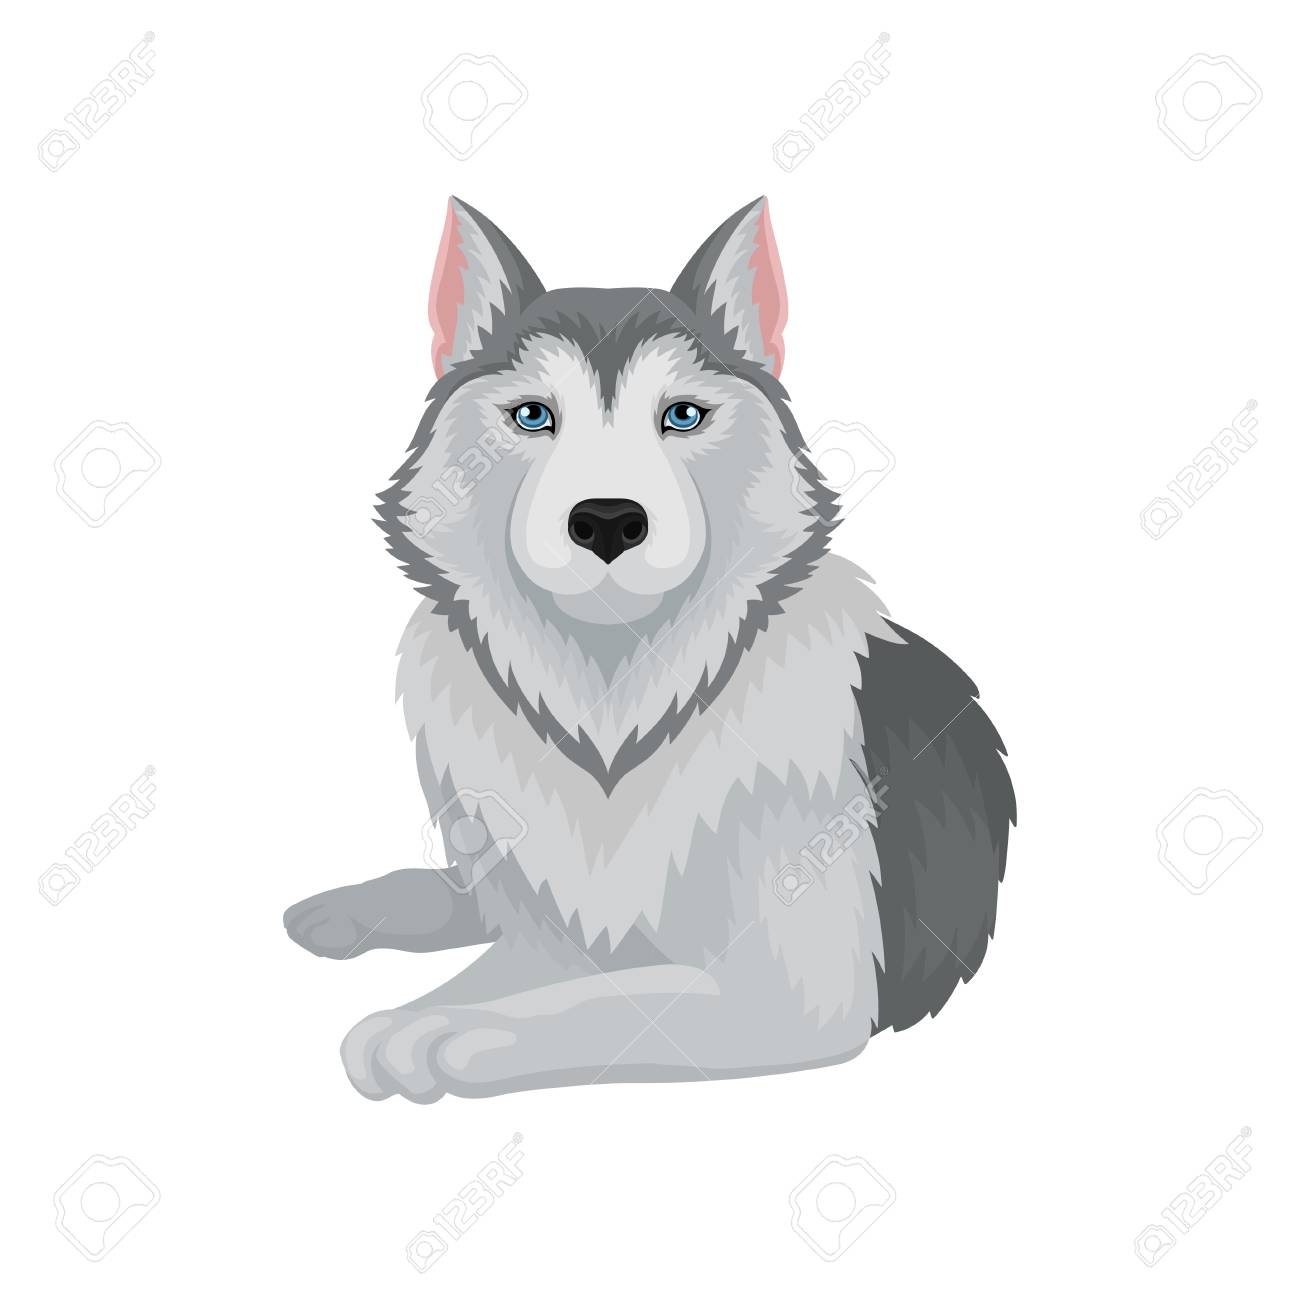 Husky Store Siberian Husky With Serious Muzzle Lying Isolated On White Background